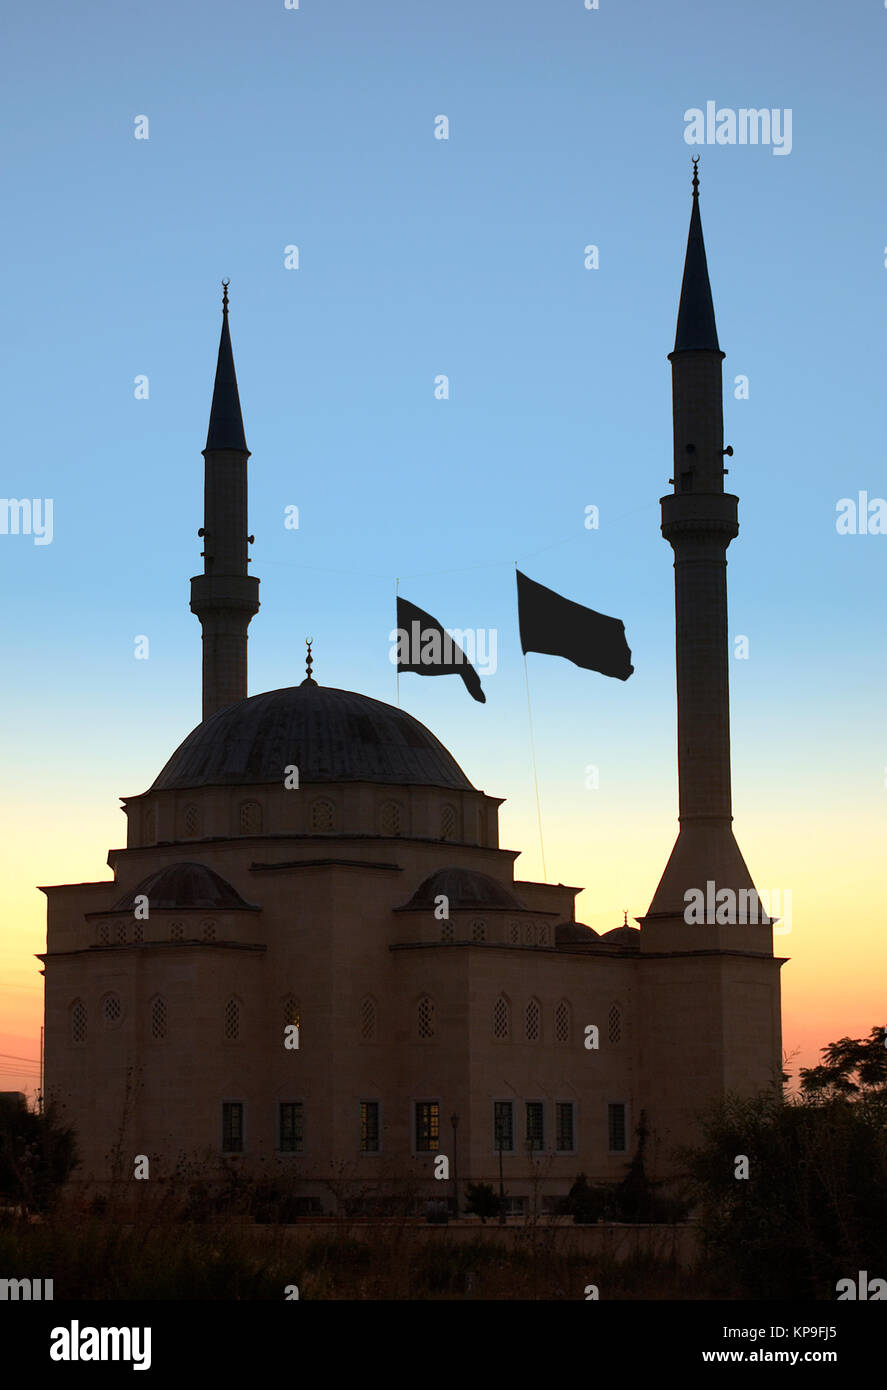 A Mosque at dawn in the town of Kyrenia (Girne) in the Turkish Republic of Northern Cyprus. - Stock Image